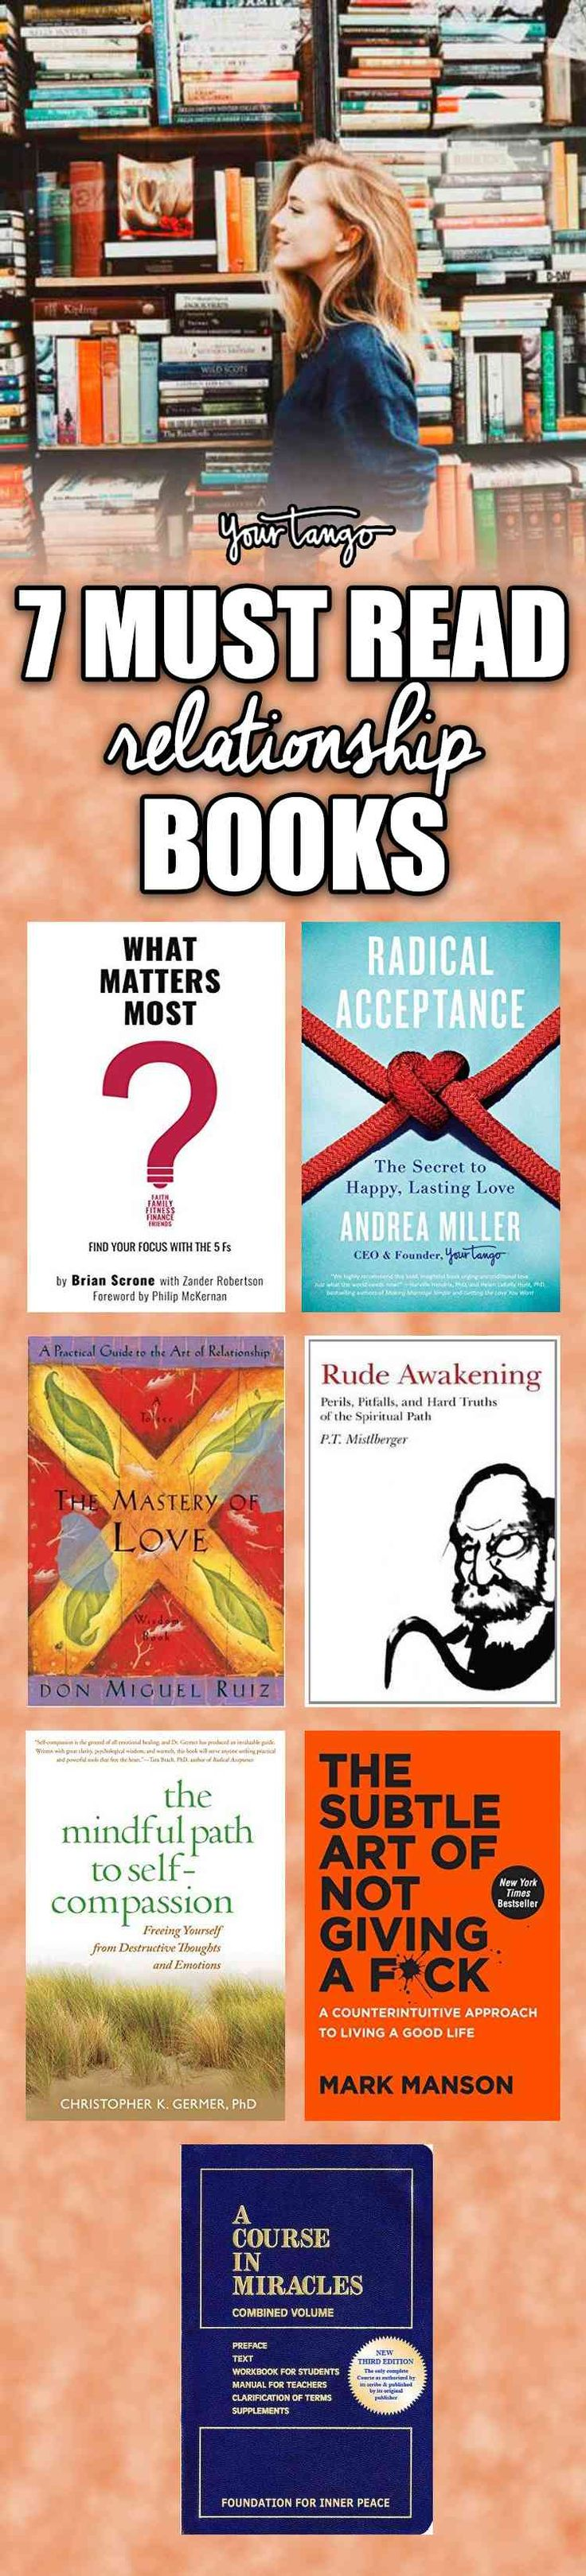 Here are seven good relationship books that you should read!